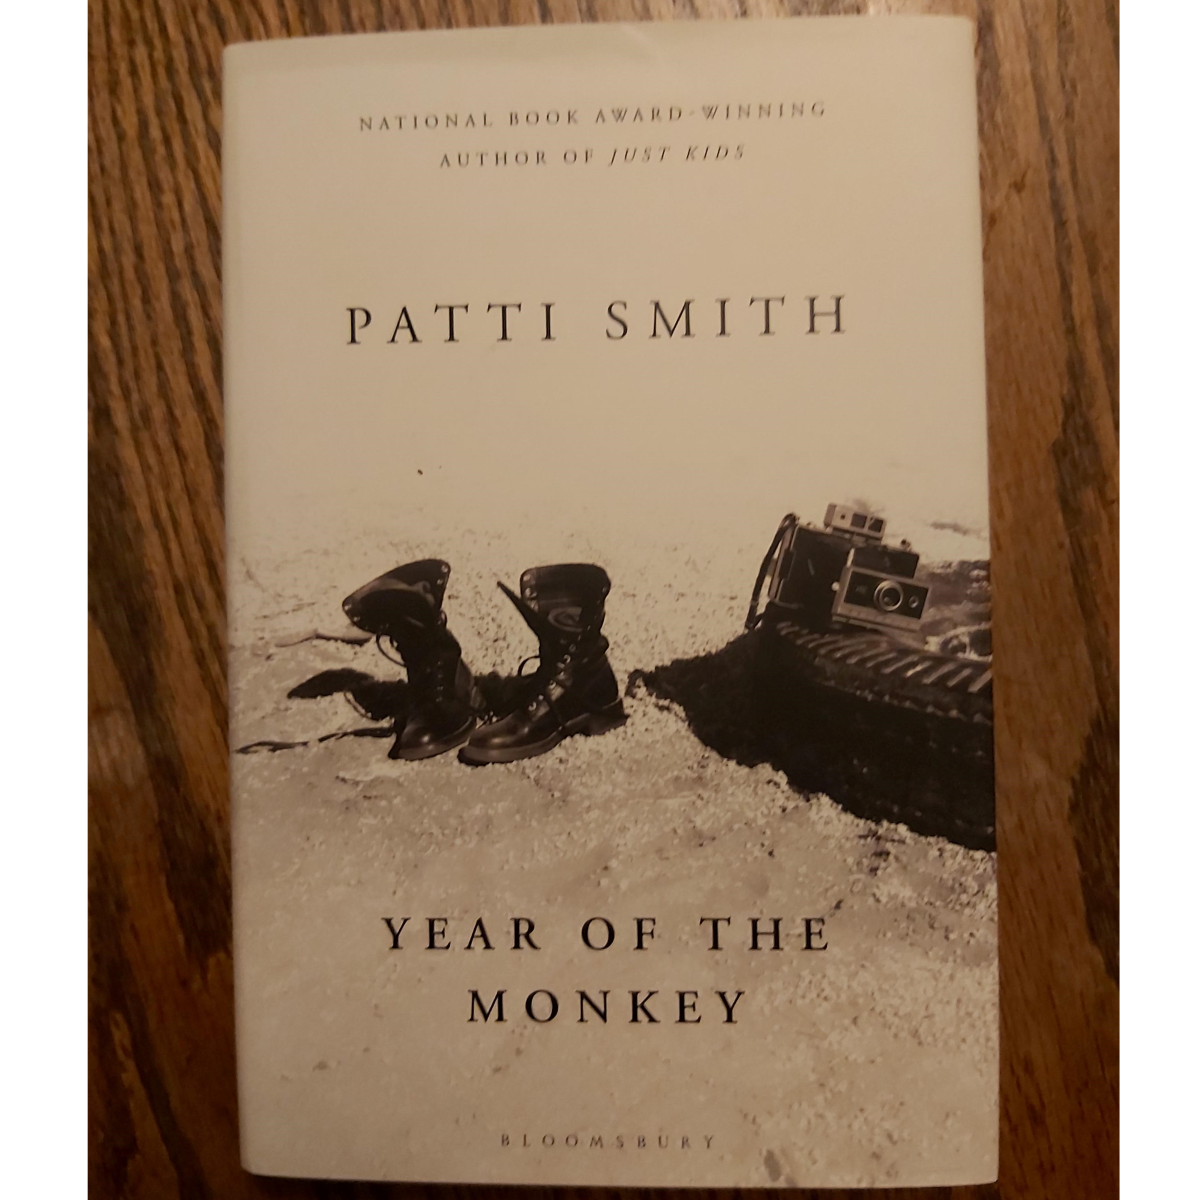 Book Review: Year of the Monkey by Patti Smith